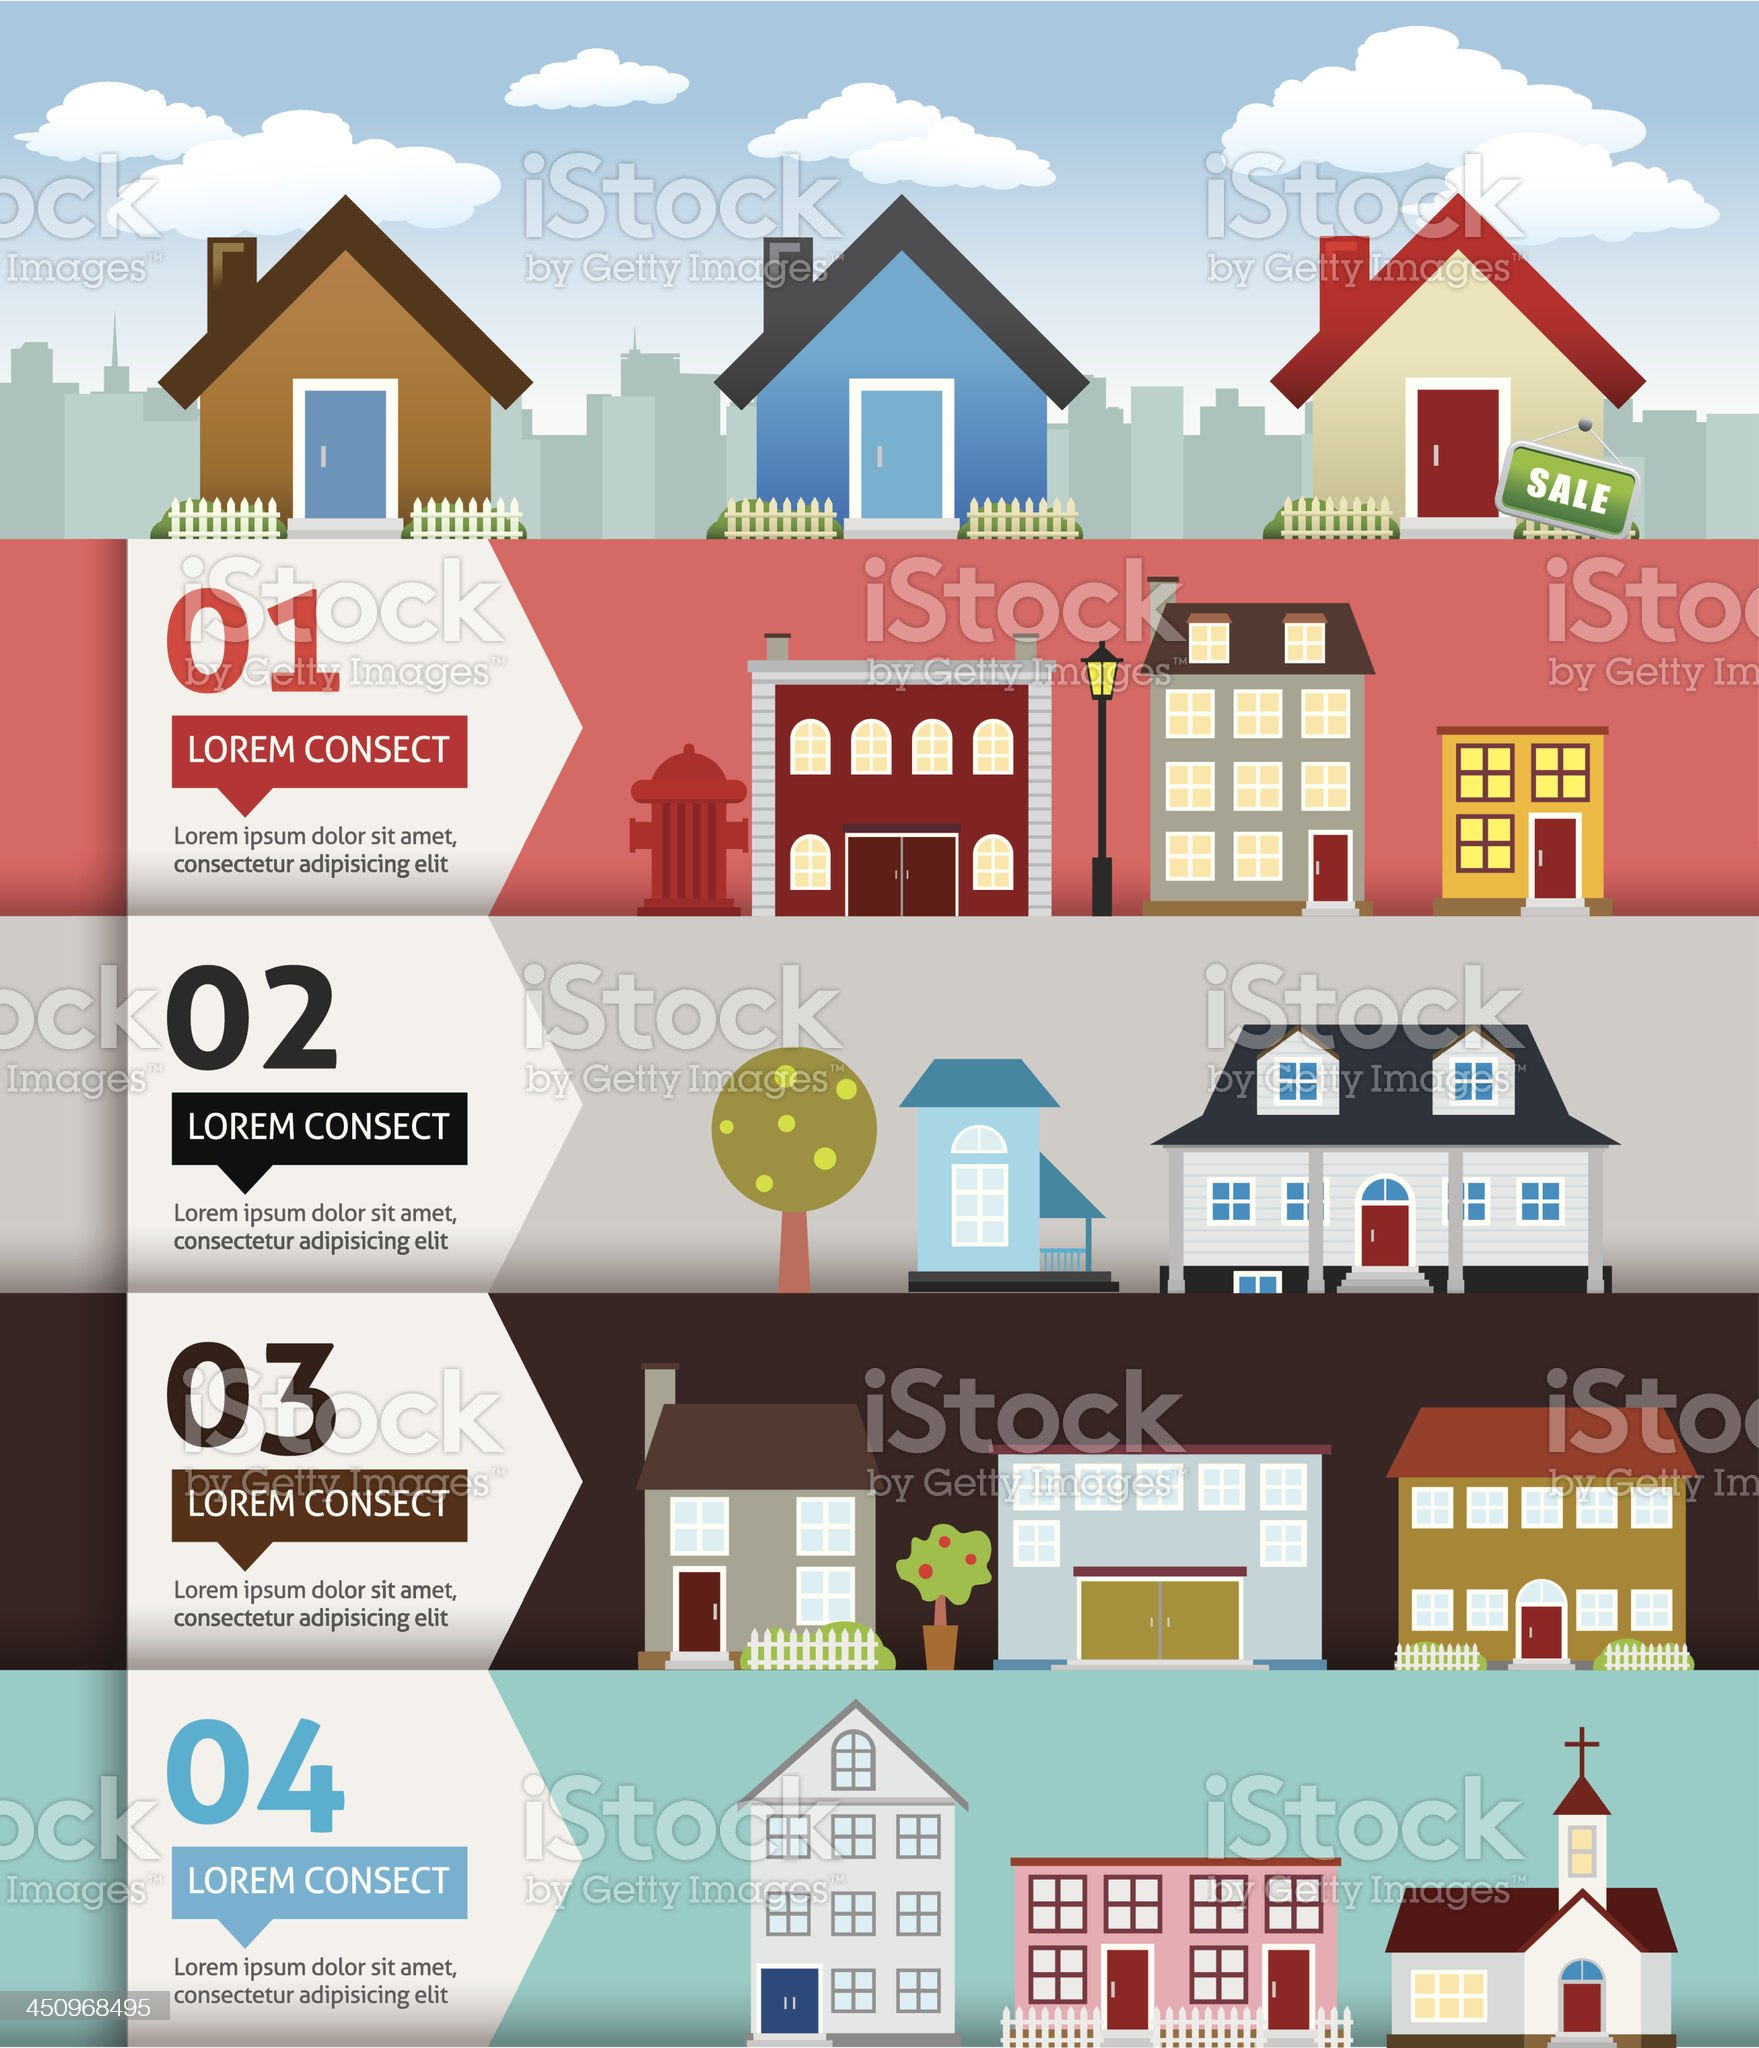 City banenr retro illustration with colorful icons royalty-free stock vector art